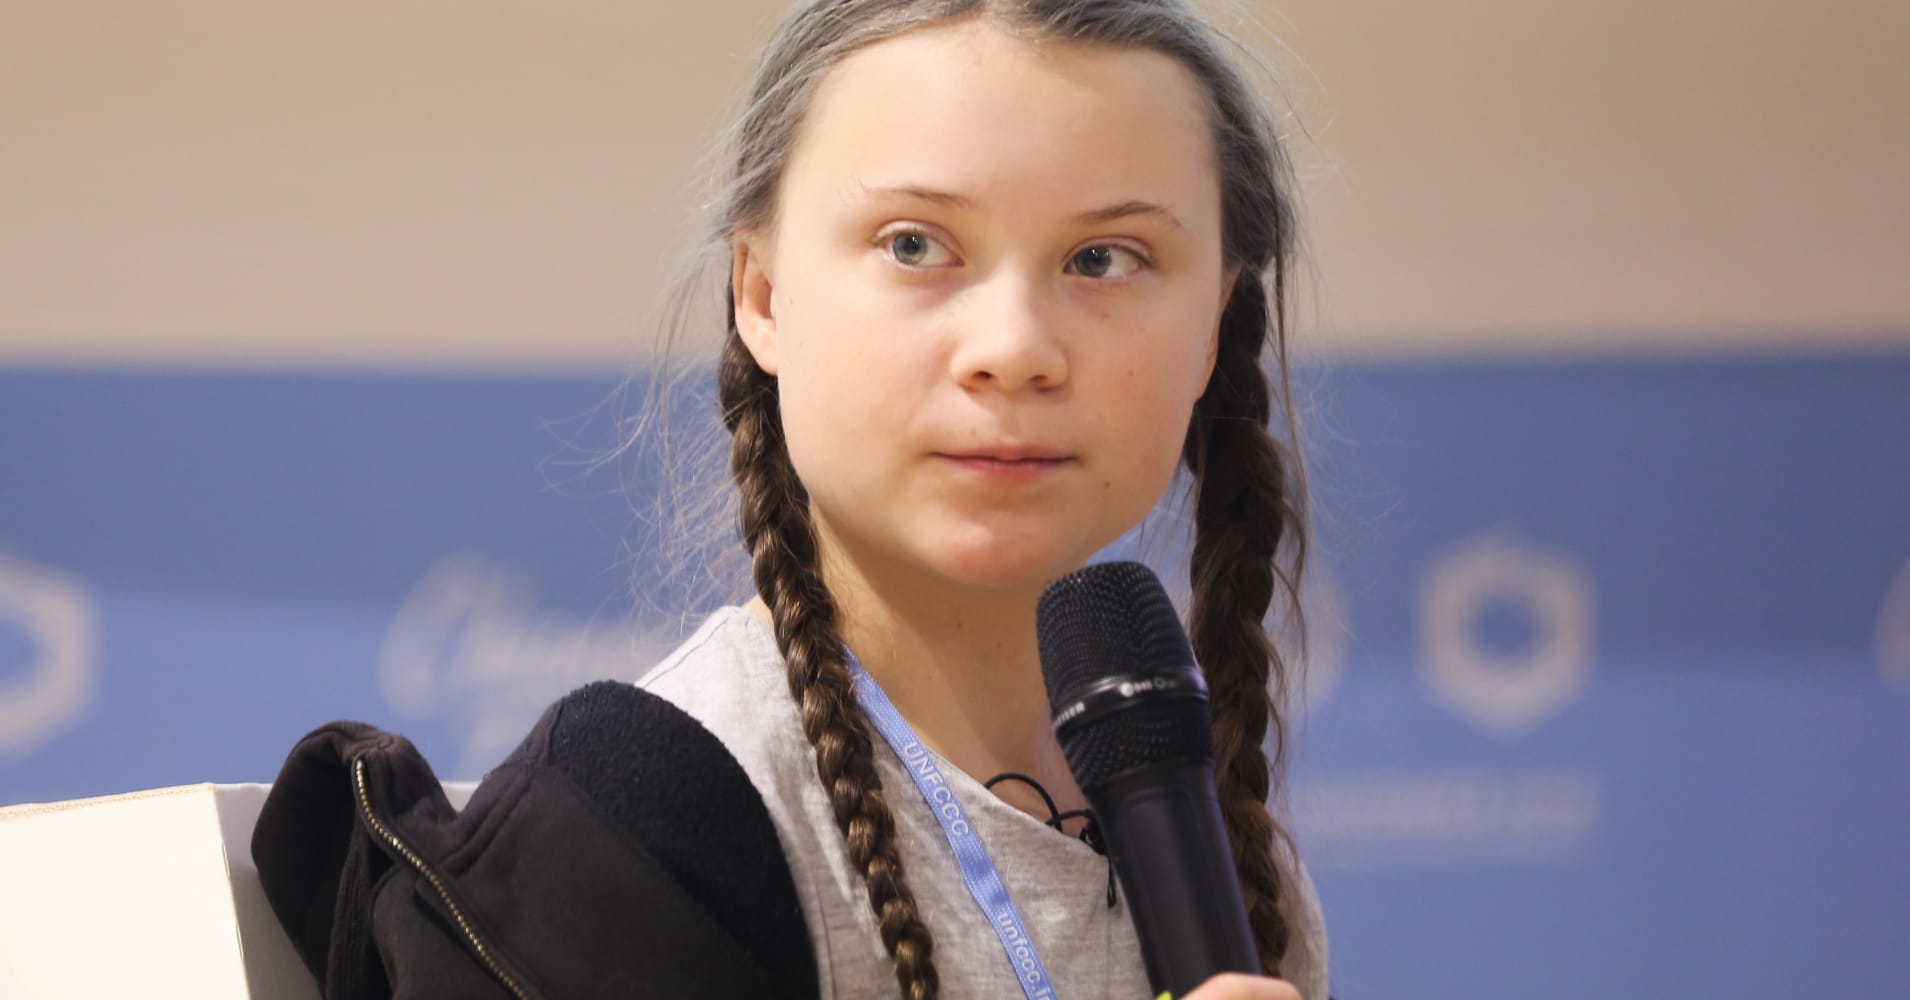 greta thunberg - photo #28